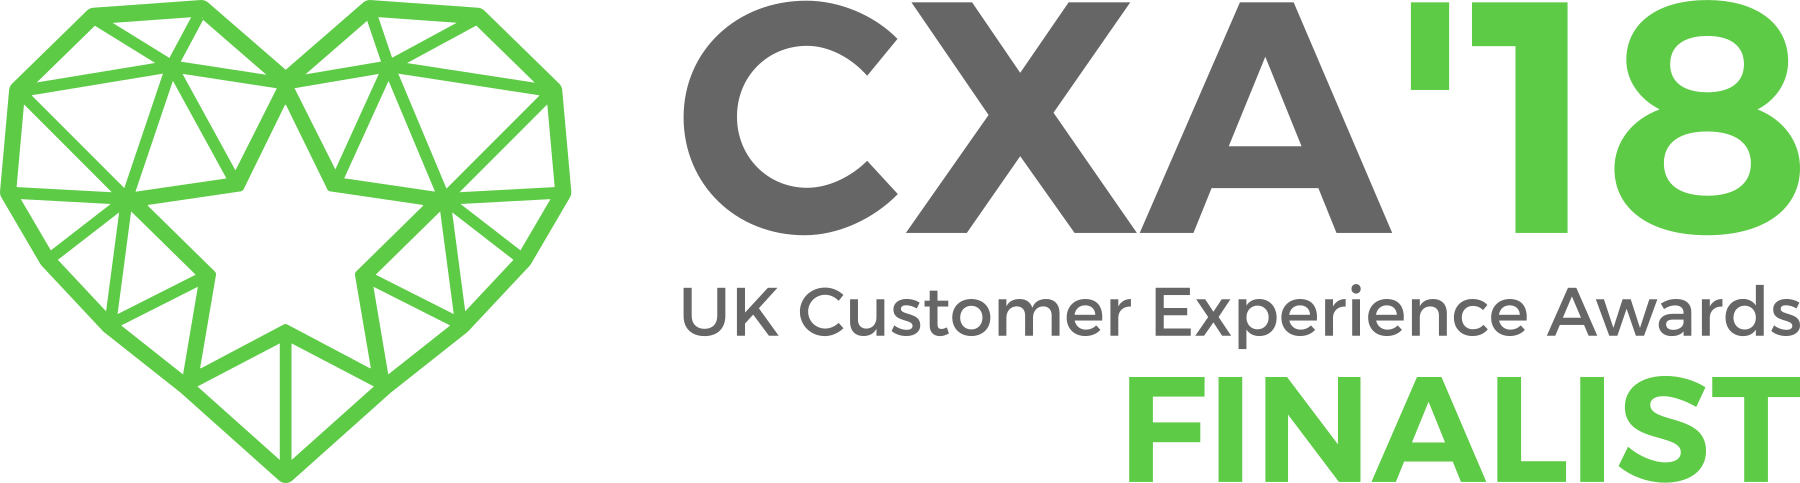 We are a finalist in the Customer Experience Awards 2018!